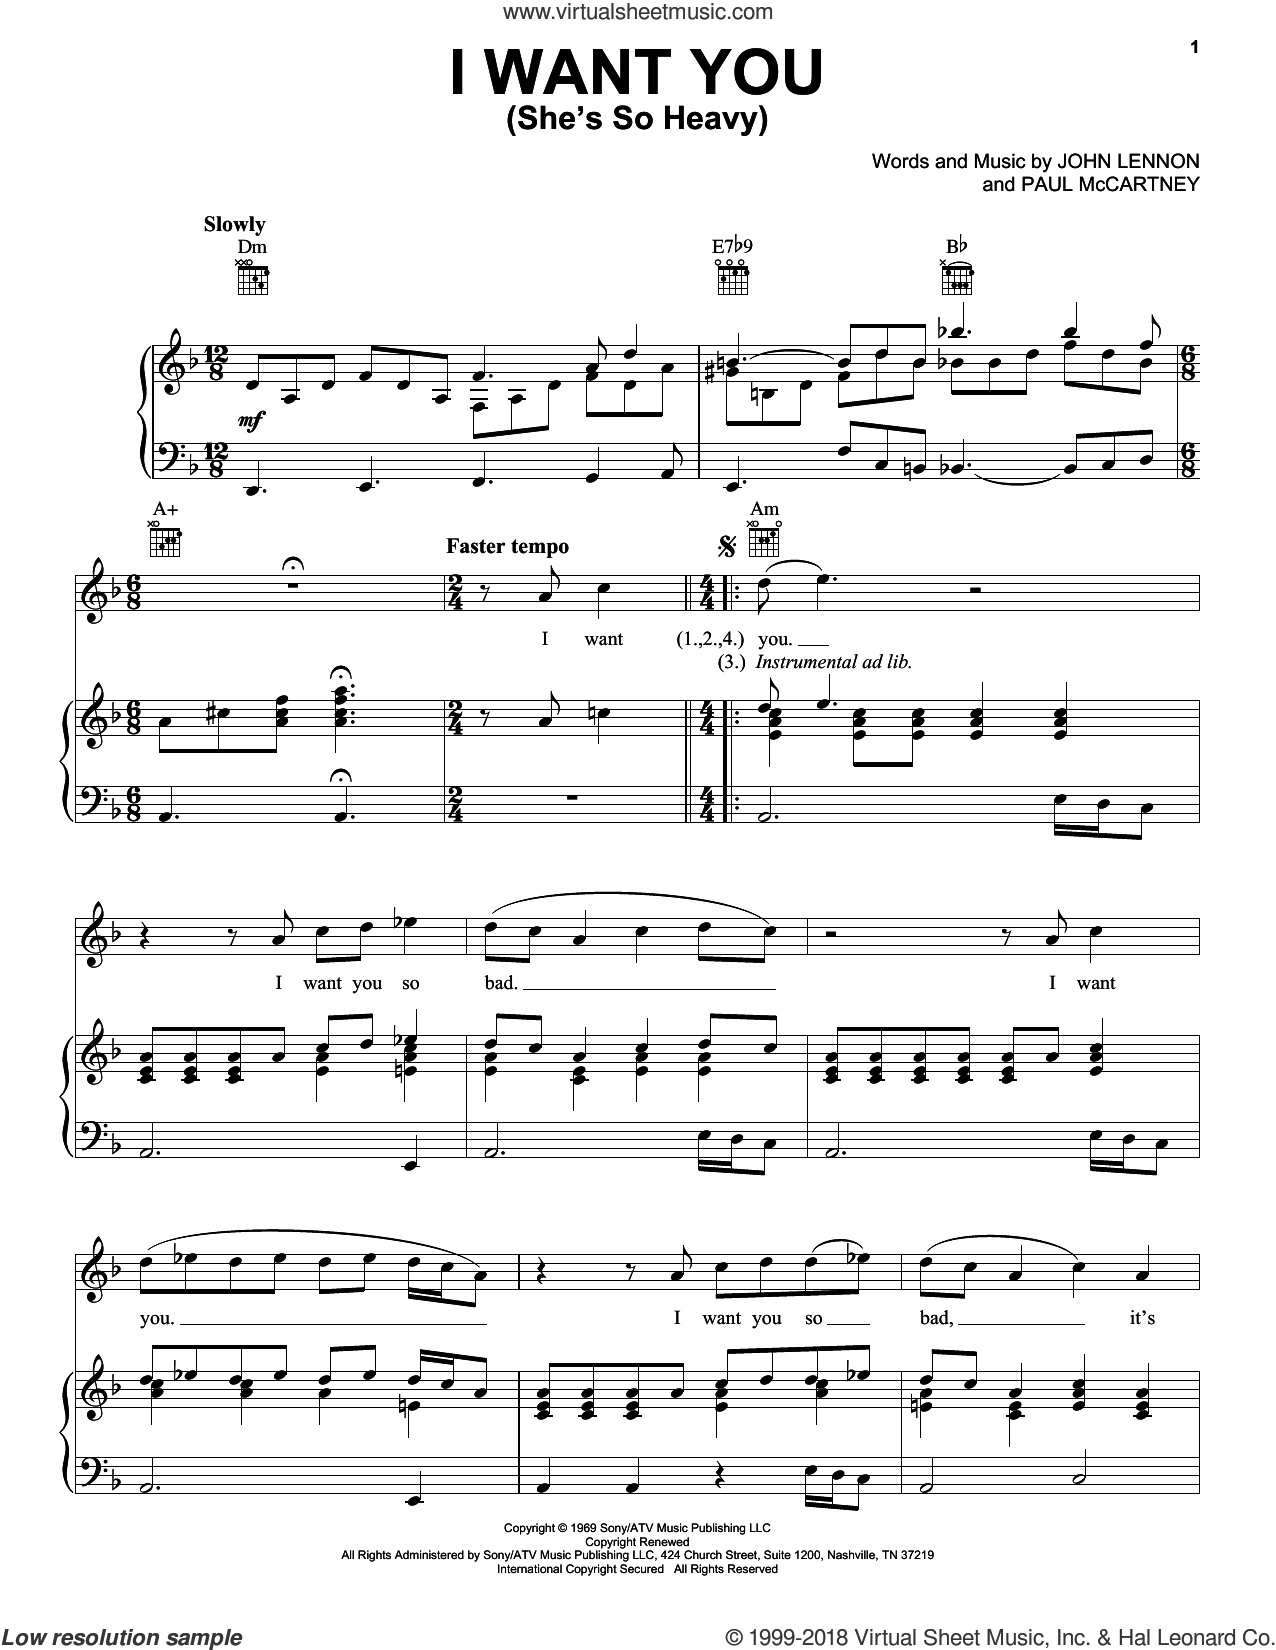 I Want You (She's So Heavy) sheet music for voice, piano or guitar by The Beatles, John Lennon and Paul McCartney, intermediate skill level